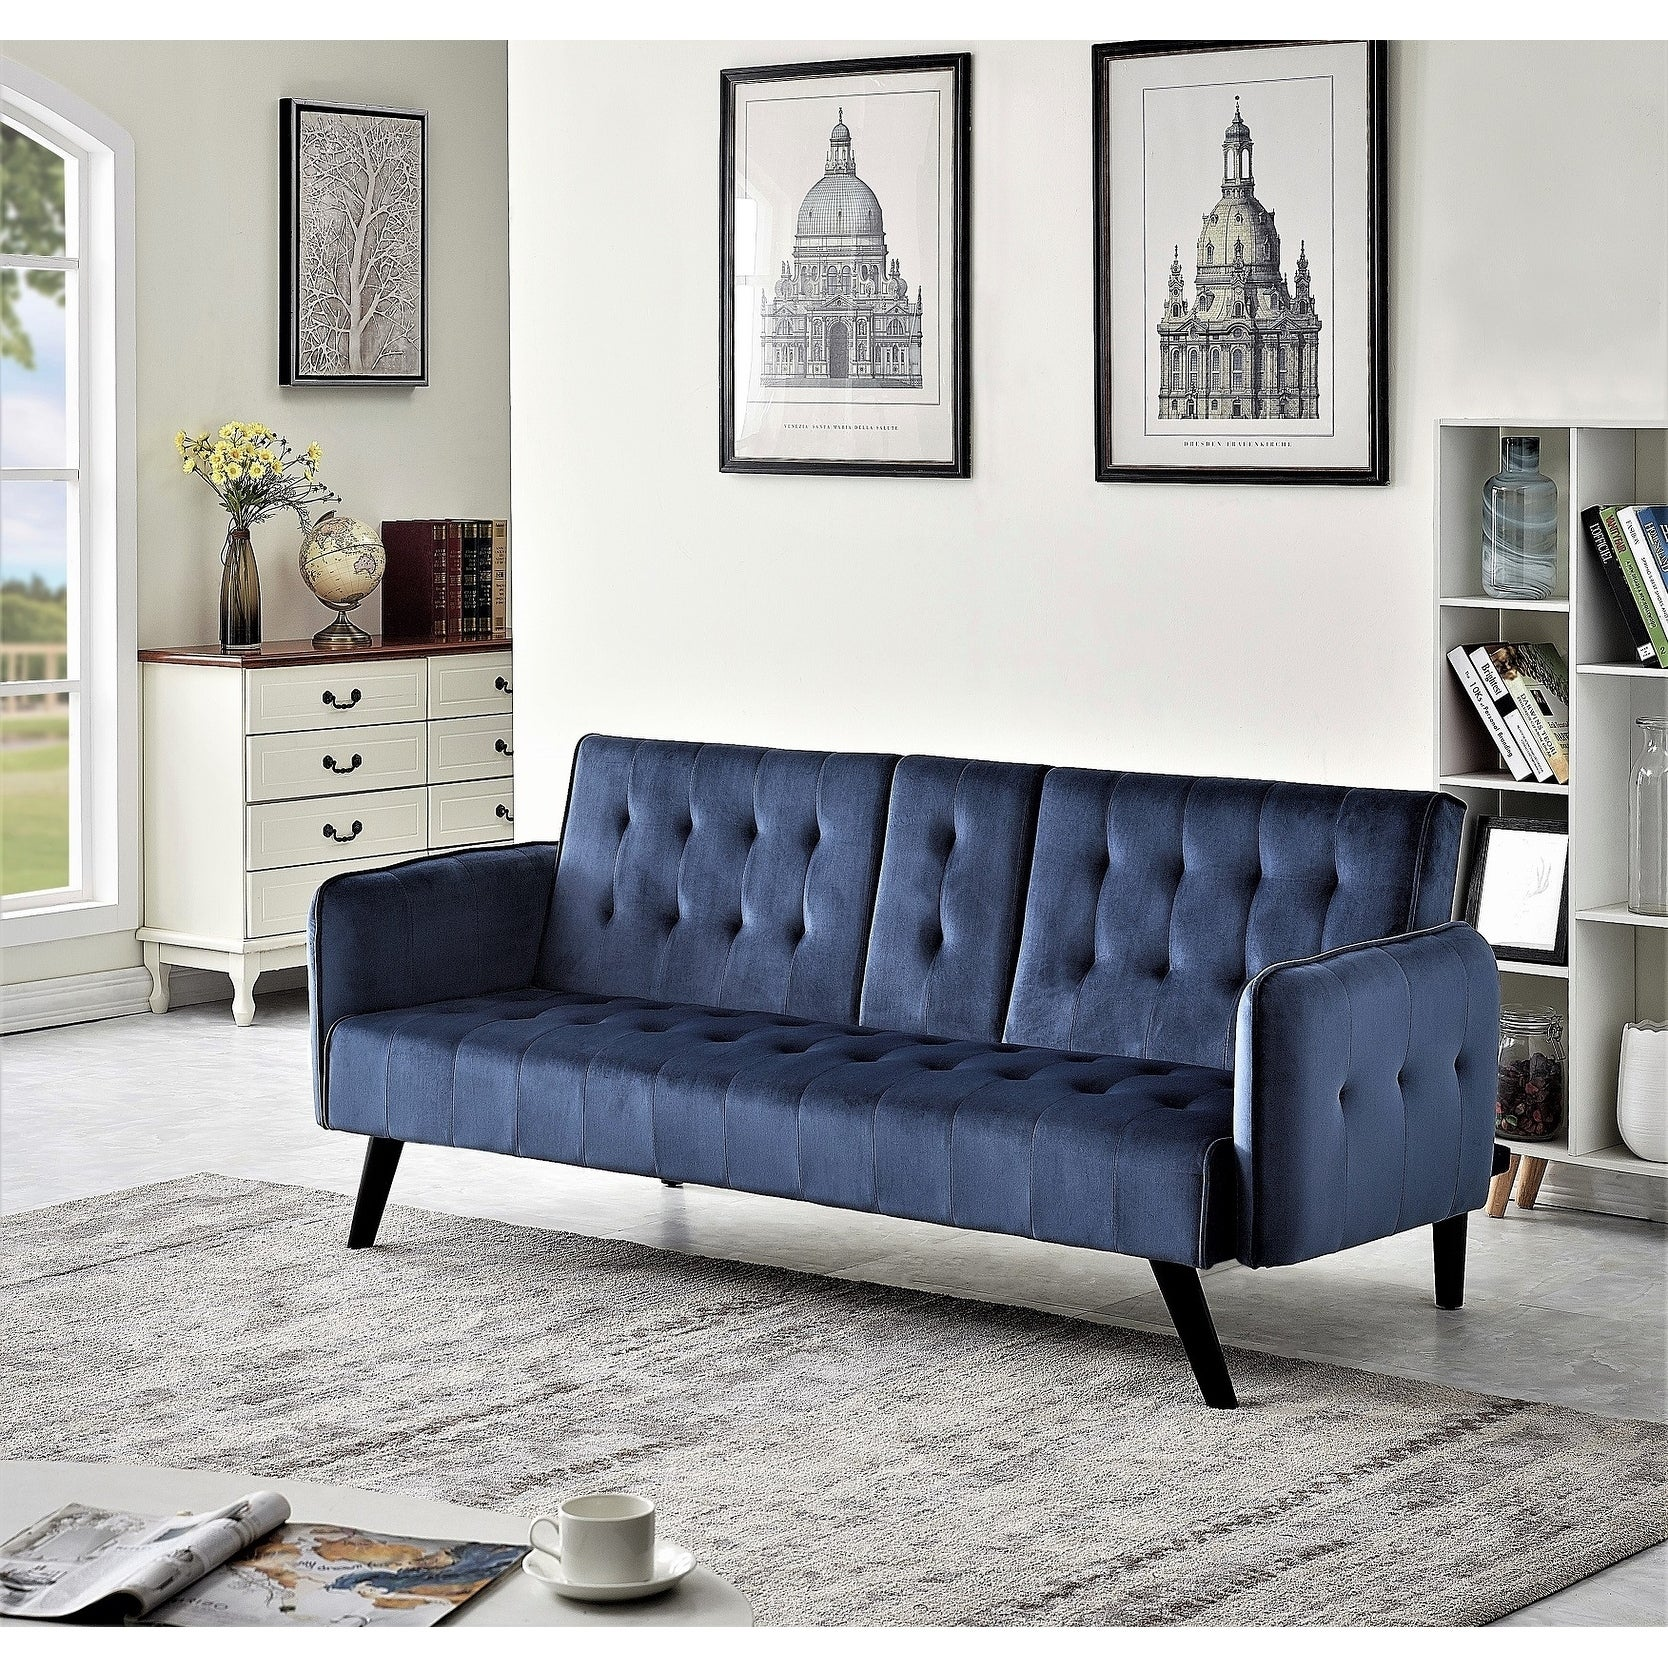 Cricklade Convertible Sleeper Sofa bed